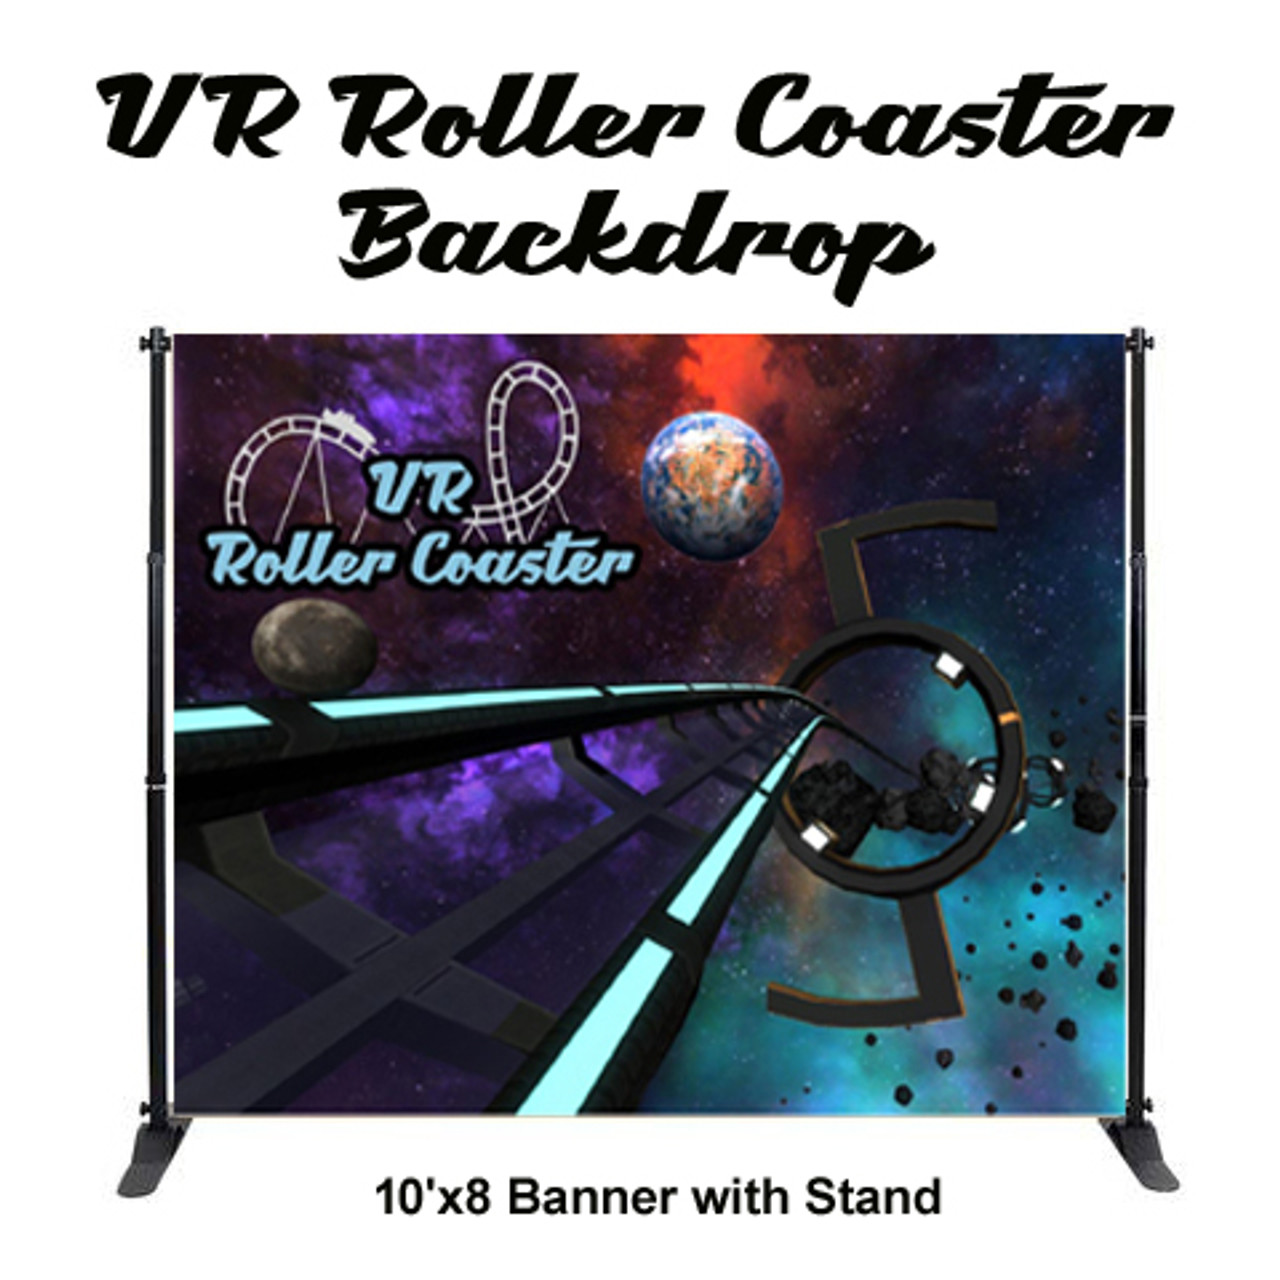 10' x 8' VR Background and Stand